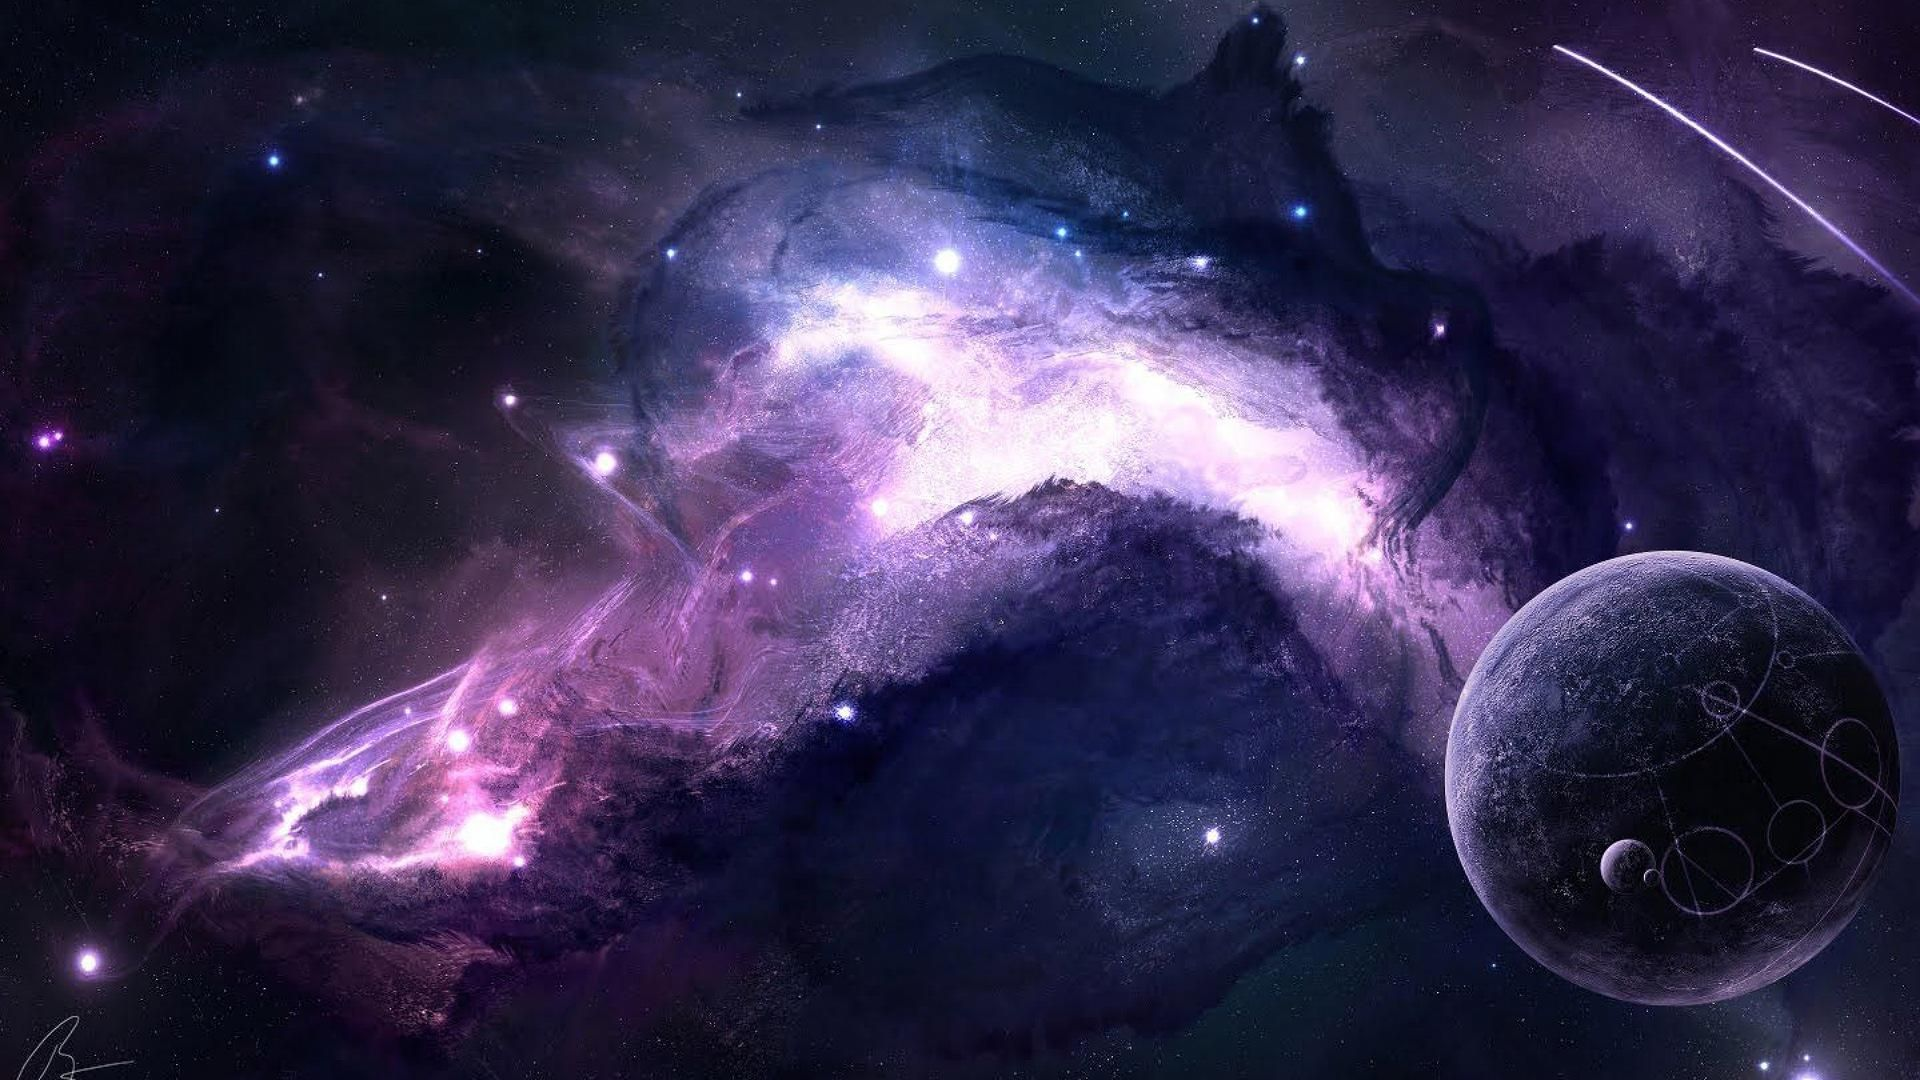 19201080 Space Is Awesome Purple Galaxy Wallpaper Wallpaper Space Space Art Wallpaper